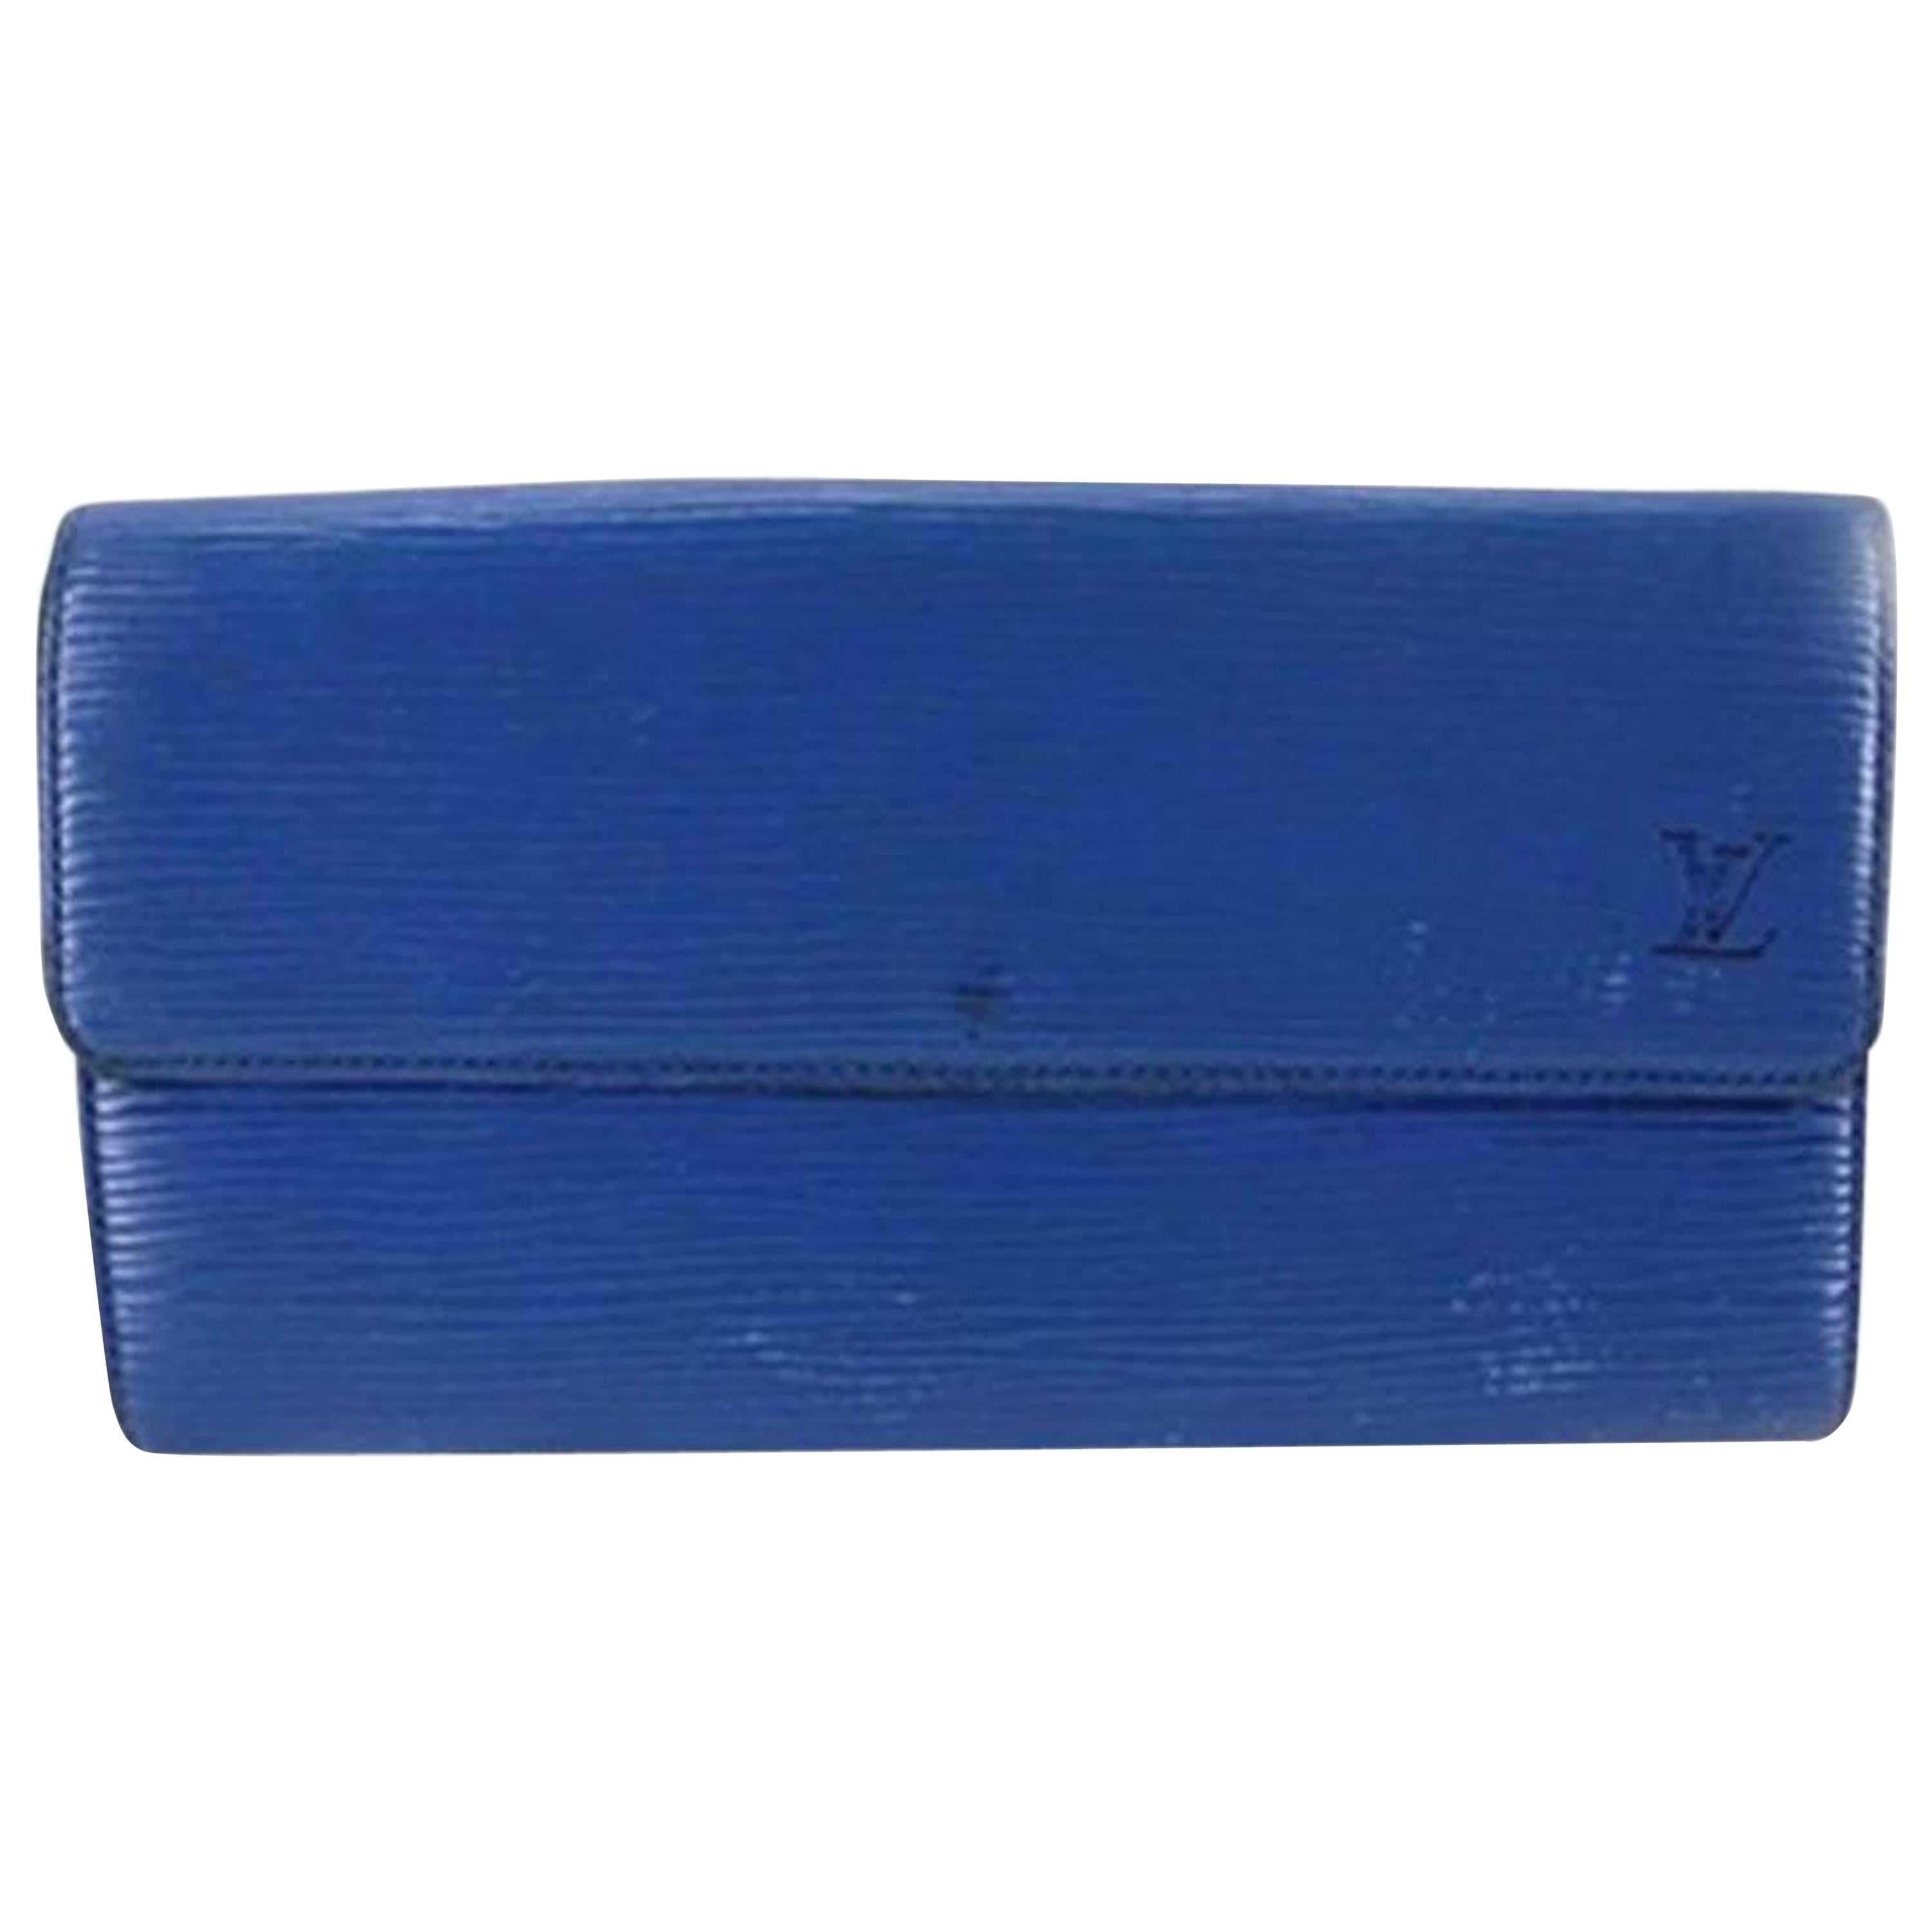 d79b3c98671f Louis Vuitton Blue Epi Key Pouch in Box with Dust Bag at 1stdibs